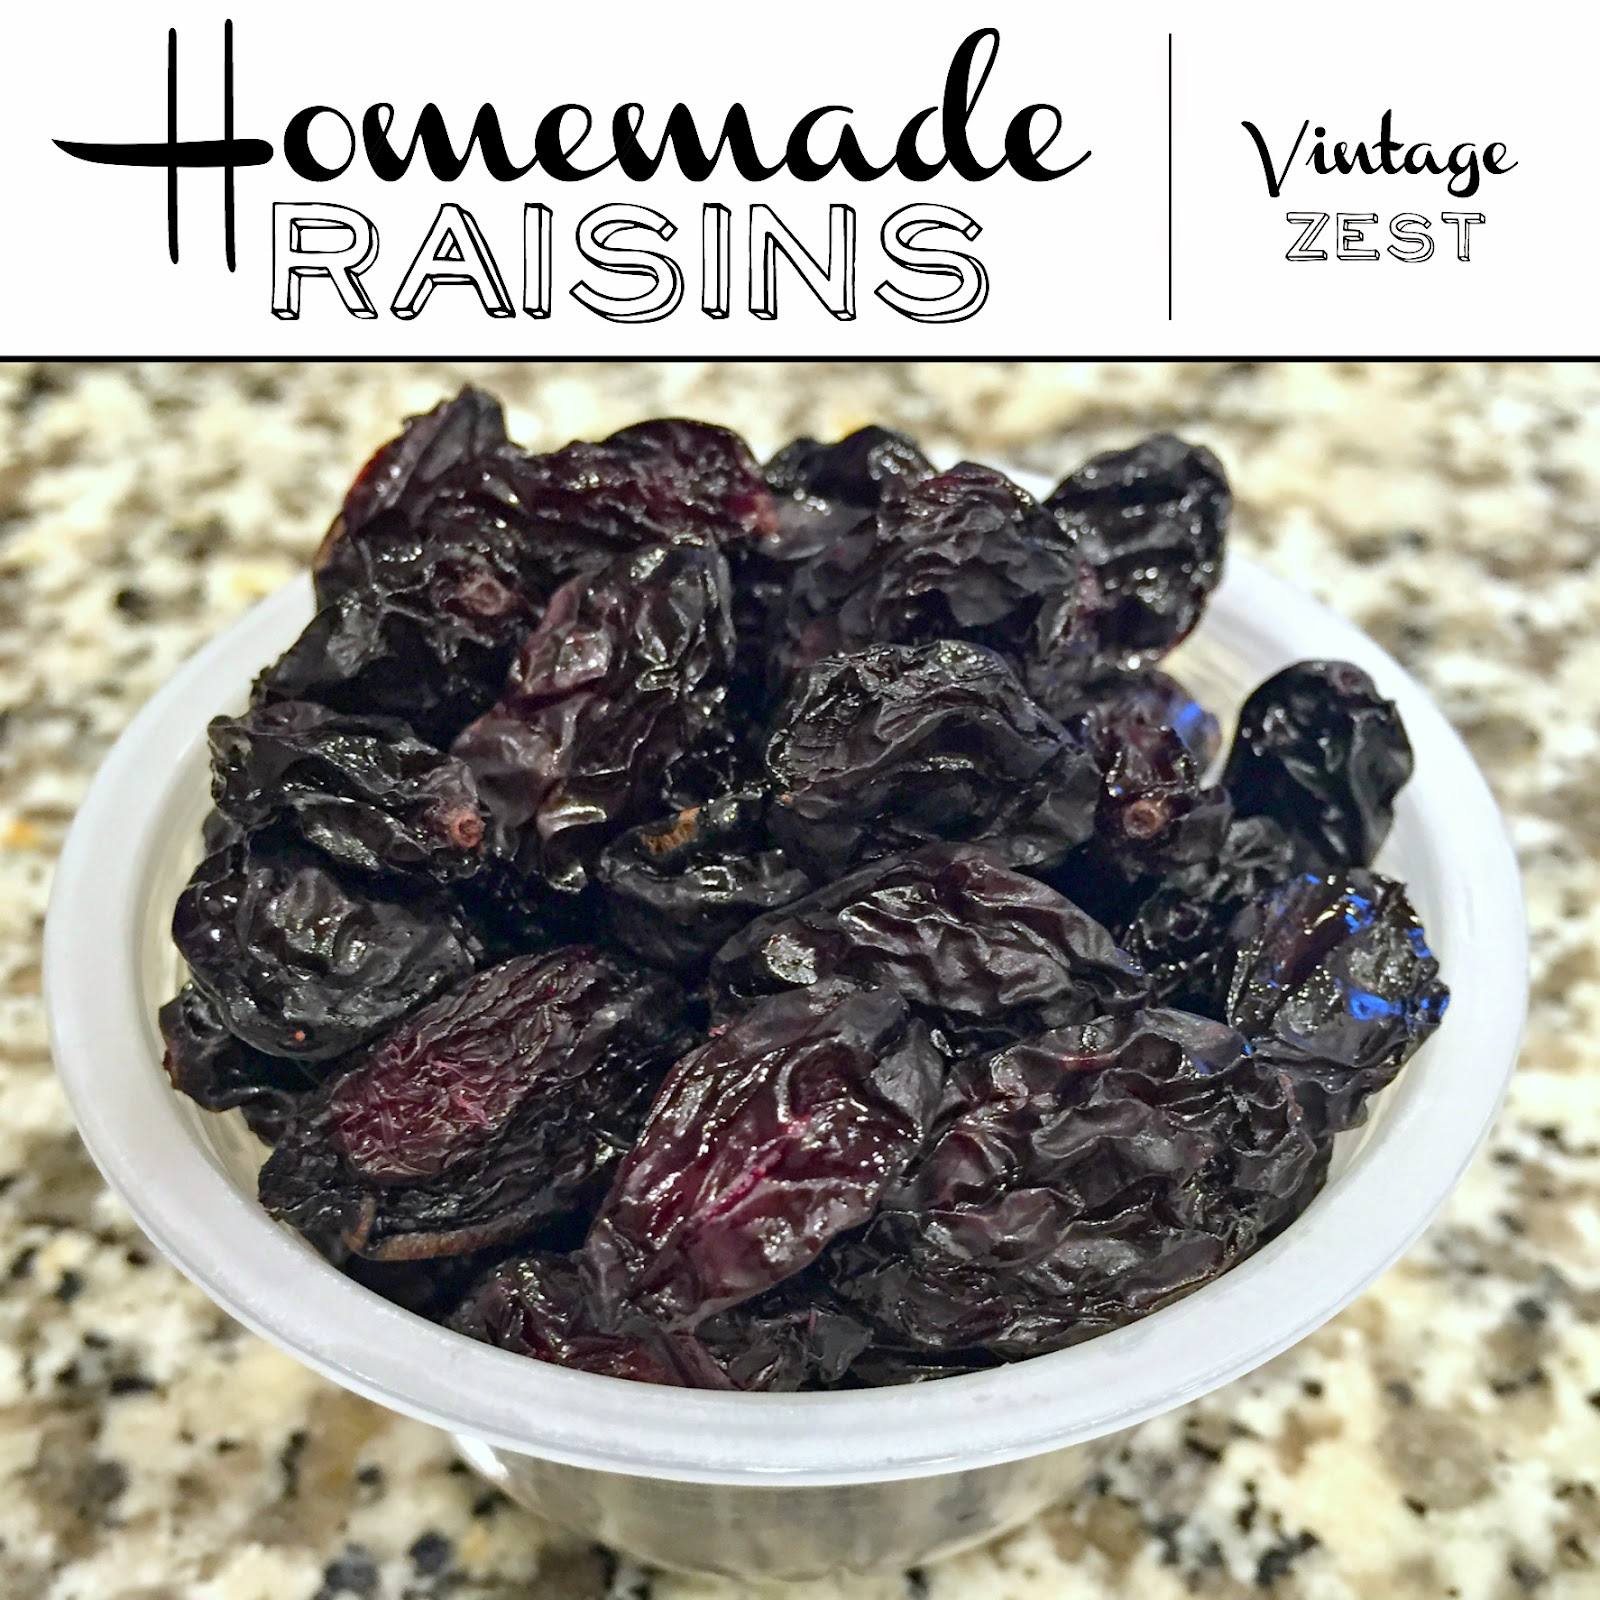 Homemade Raisins on Diane's Vintage Zest #recipe #food #healthy